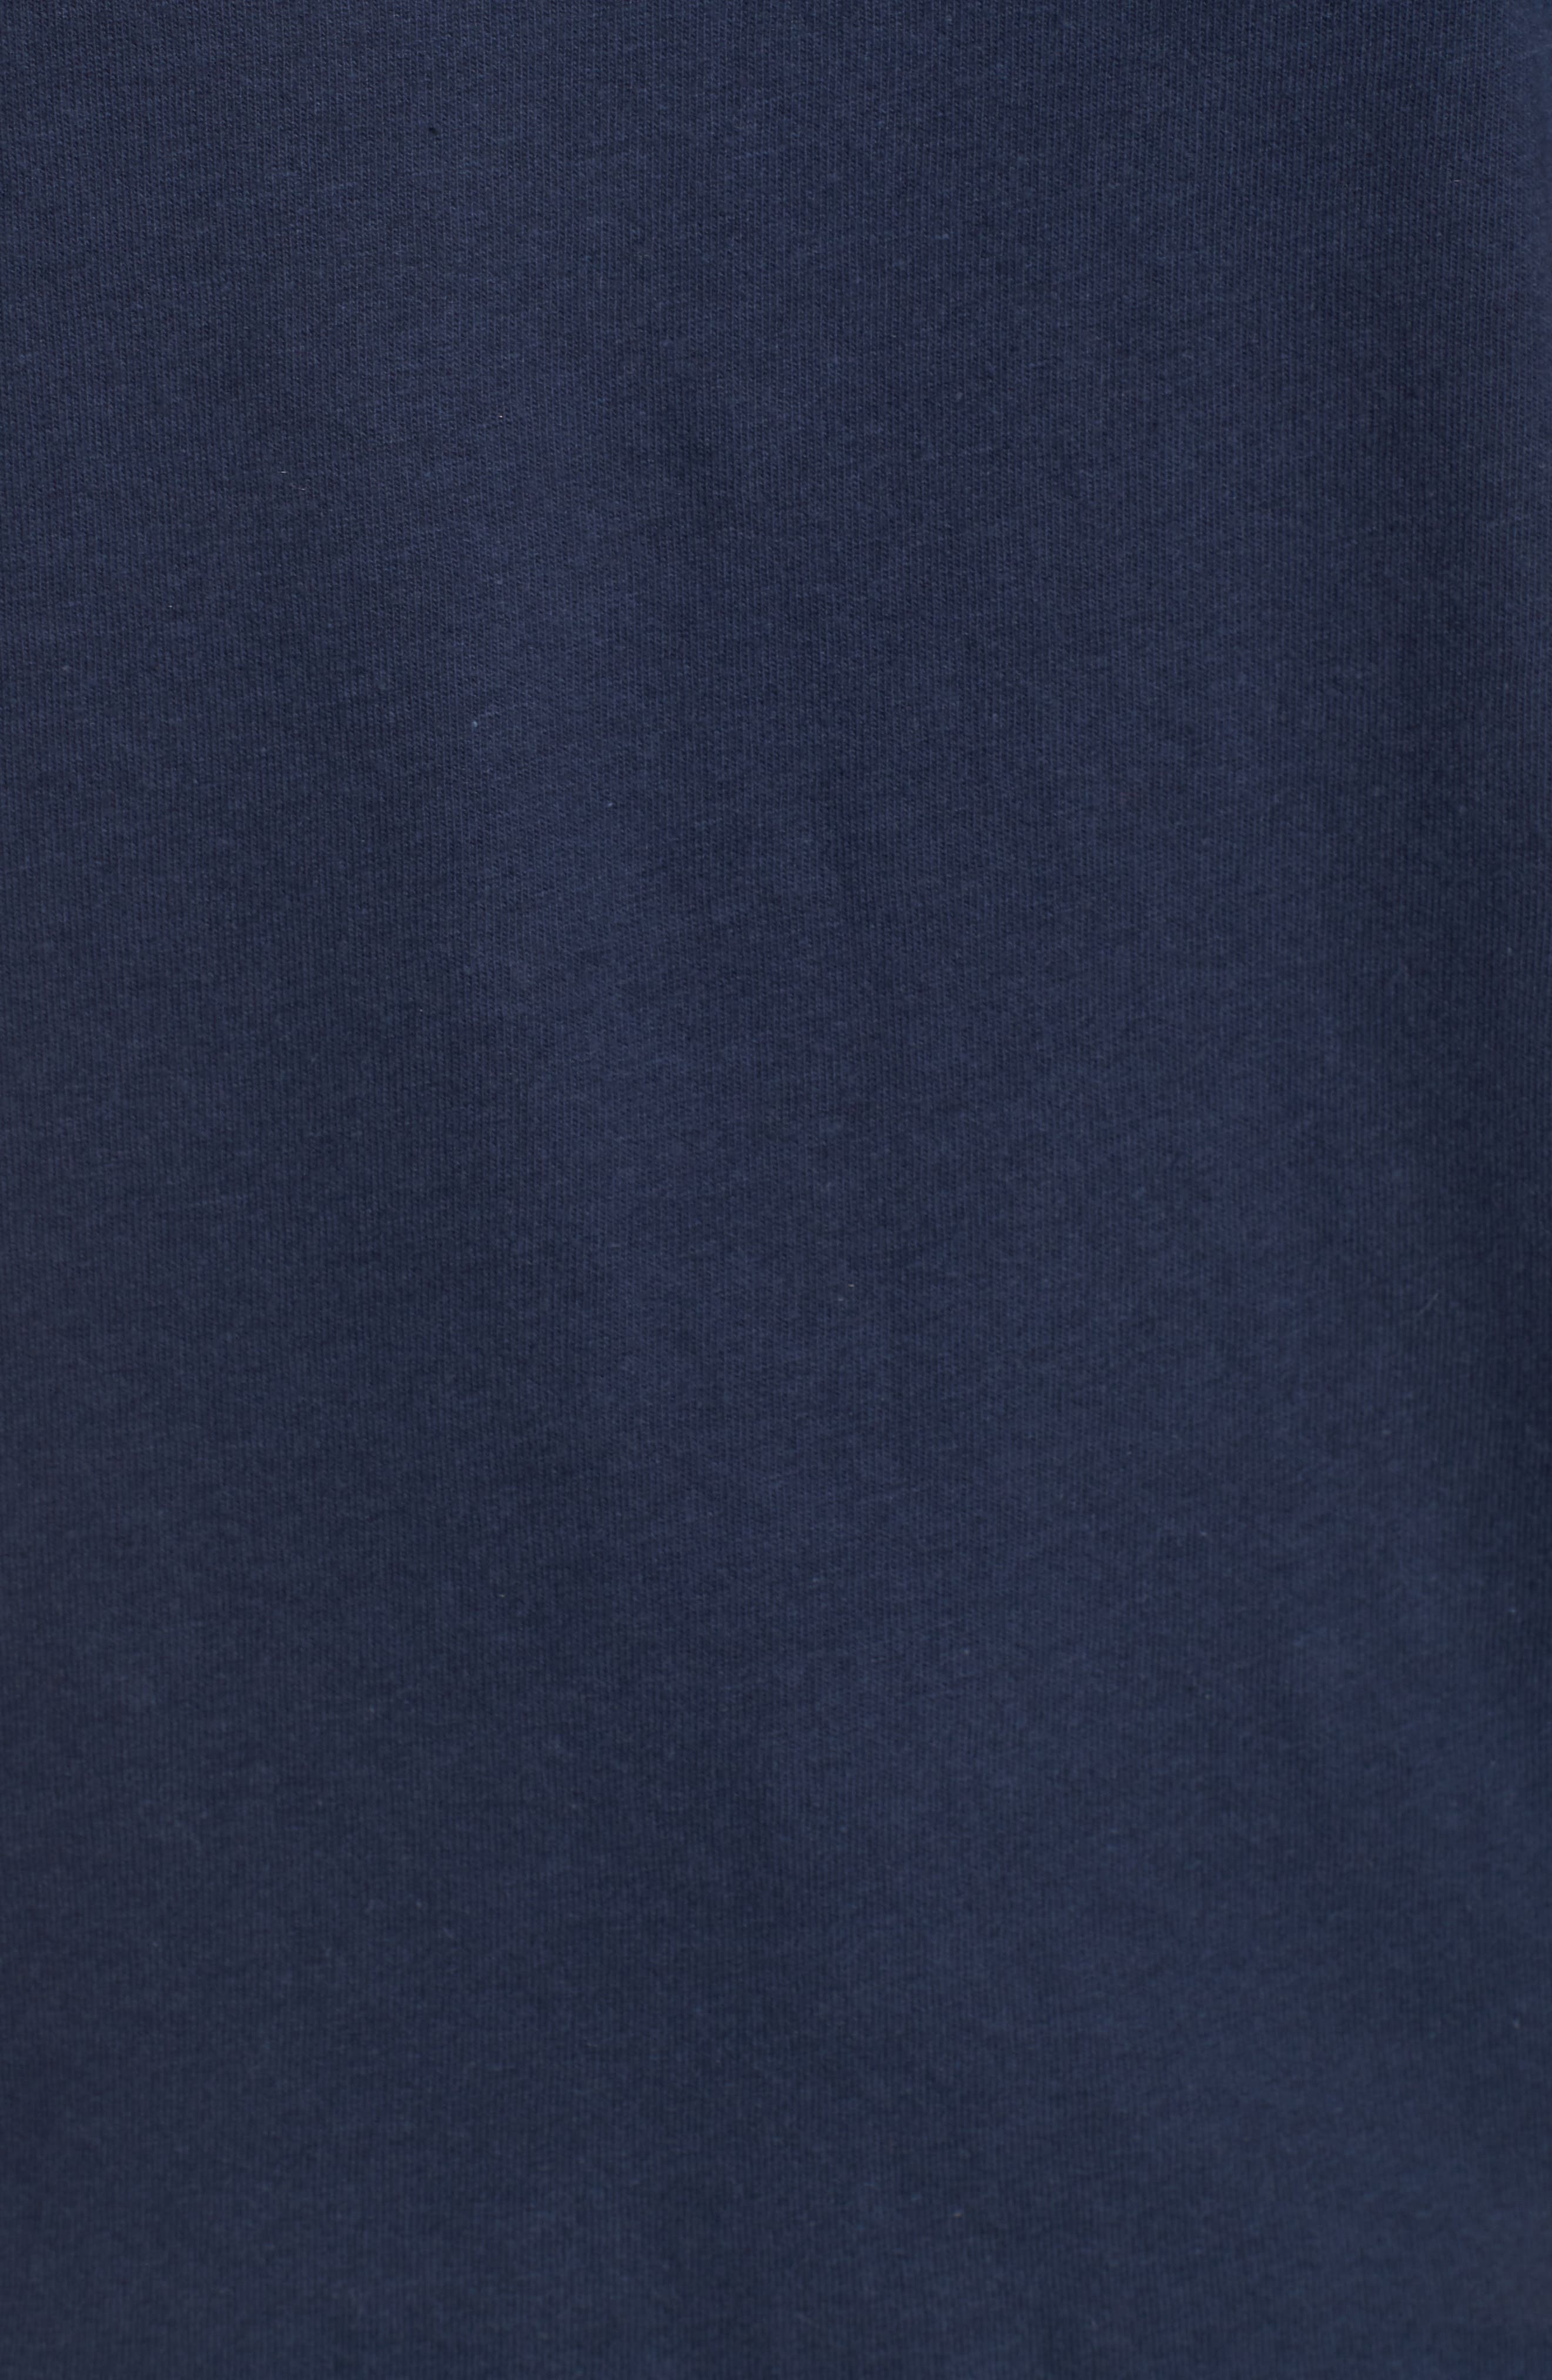 Poolside Graphic Tee,                             Alternate thumbnail 6, color,                             Navy